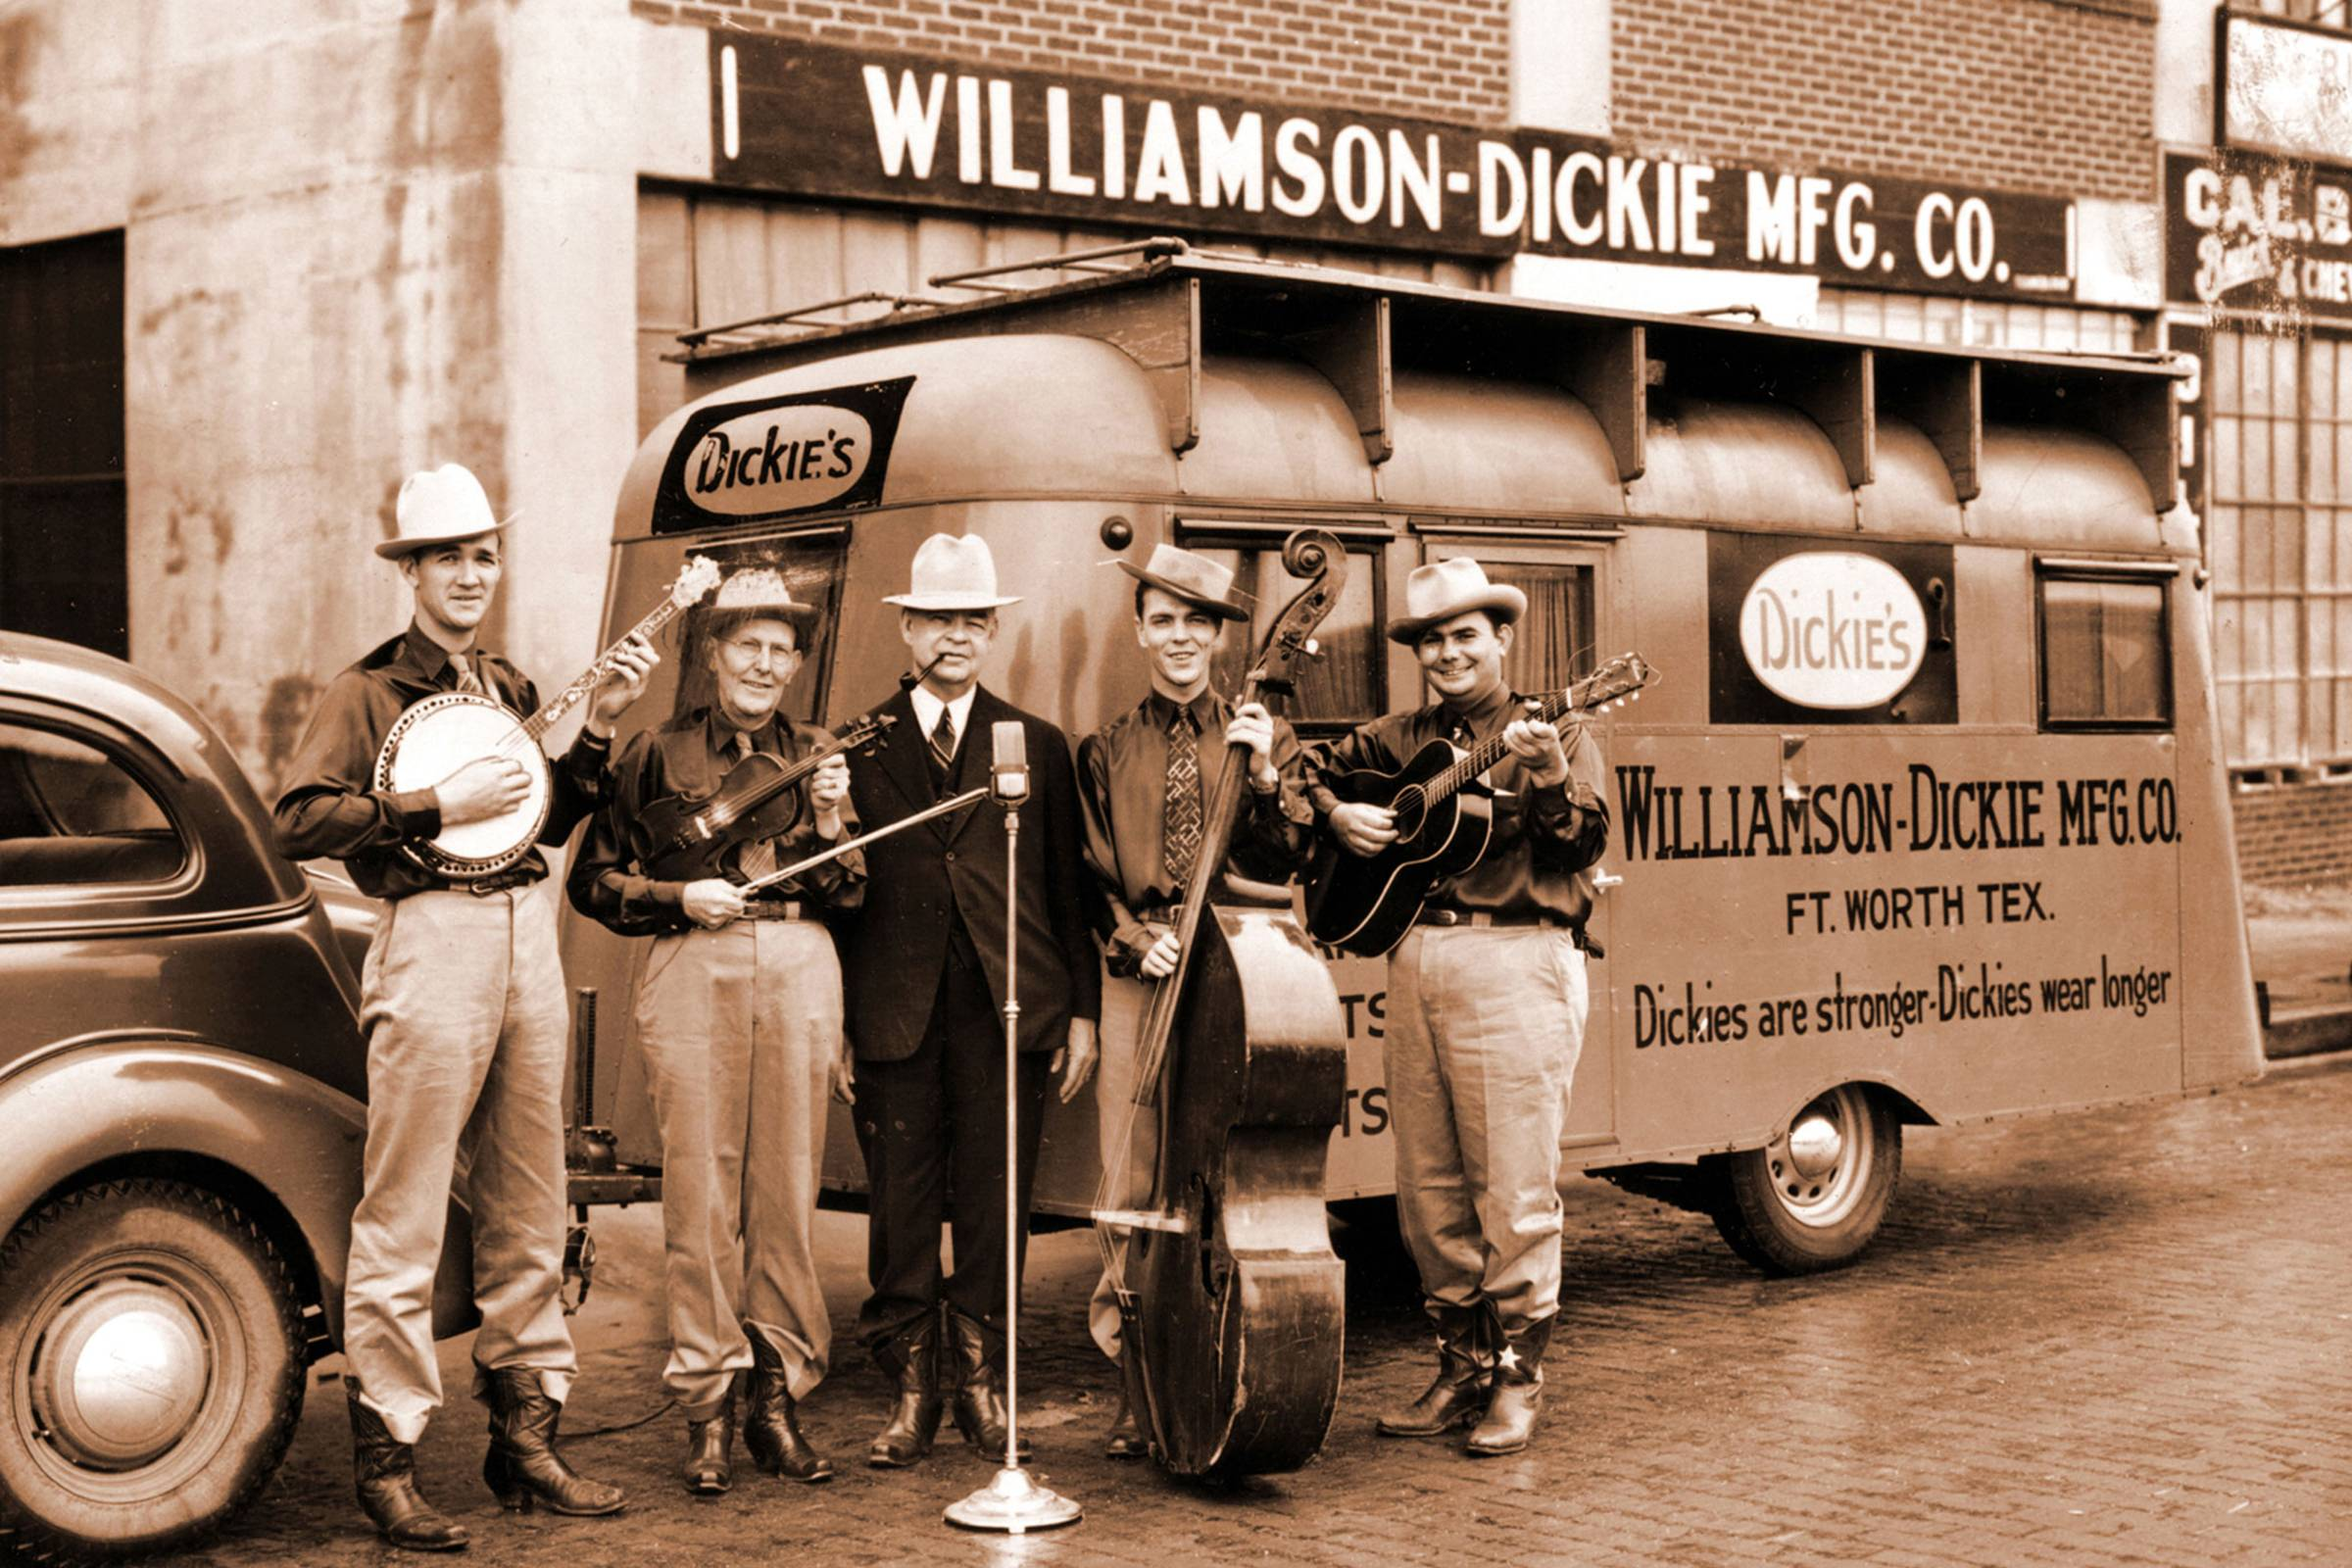 c854703049b5 Dickies (formally Williamson-Dickie Mfg. Co.) started life as a small bib  overall company. C.N. Williamson and E.E. Colonel Dickie tried several  other ...